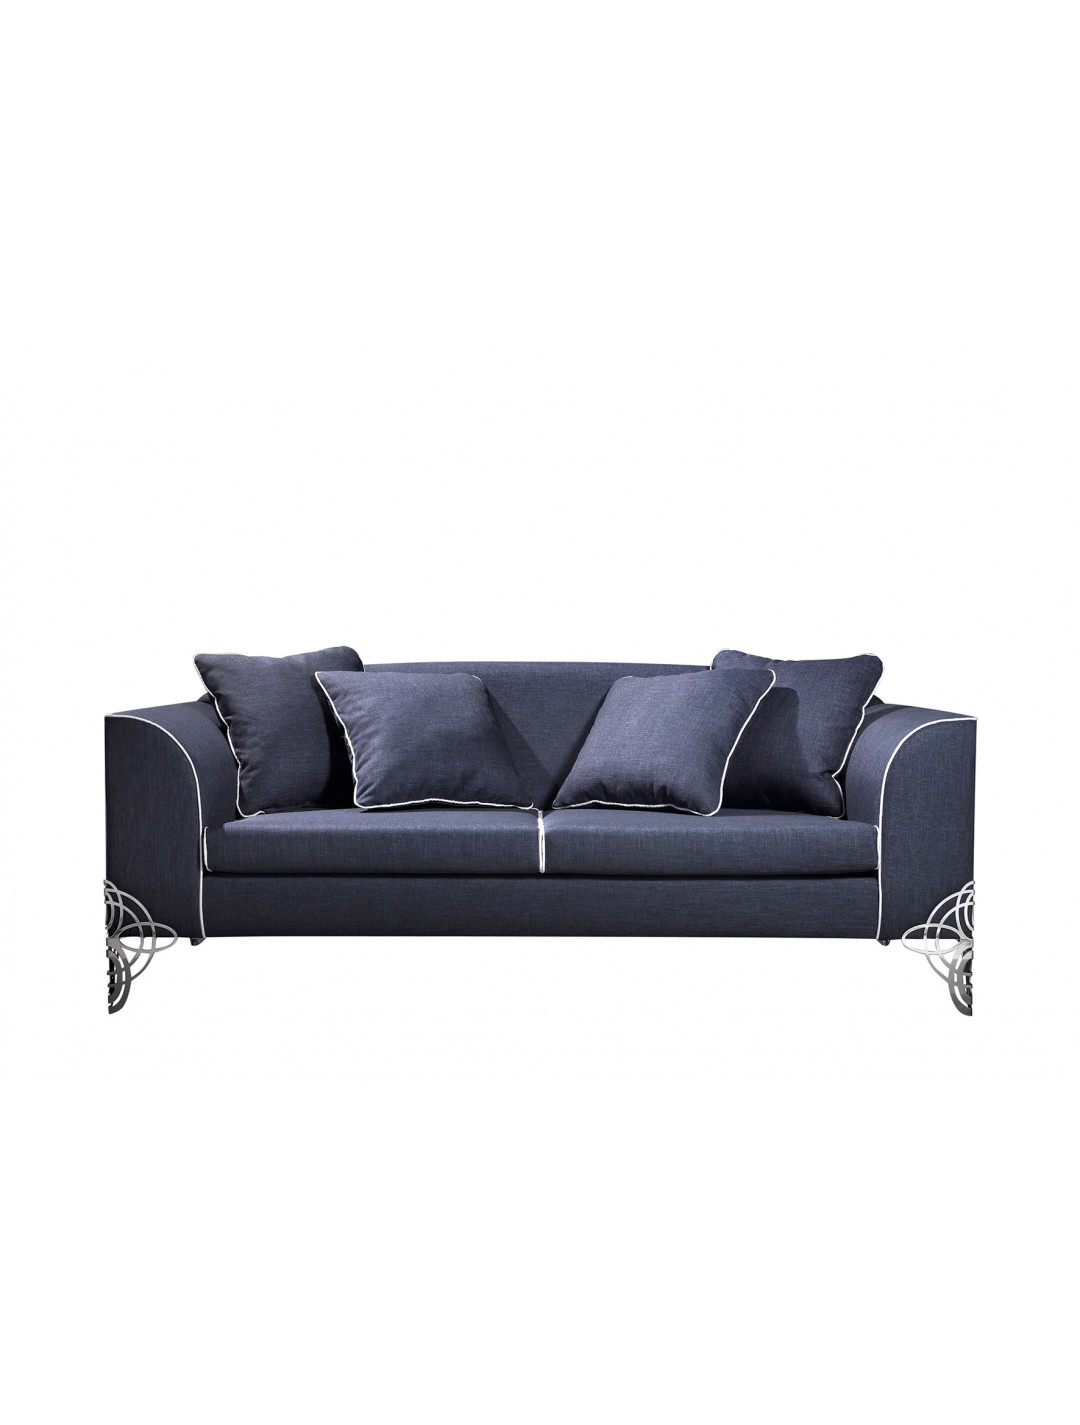 REGINA DEI GHIACCI 3-SEATER SOFA, UPHOLSTERY: WITHOUT FABRIC, WITH FOUR 60*60 LOOSE CUSHIONS, STAINLESS STEEL LEGS, C.O.M.